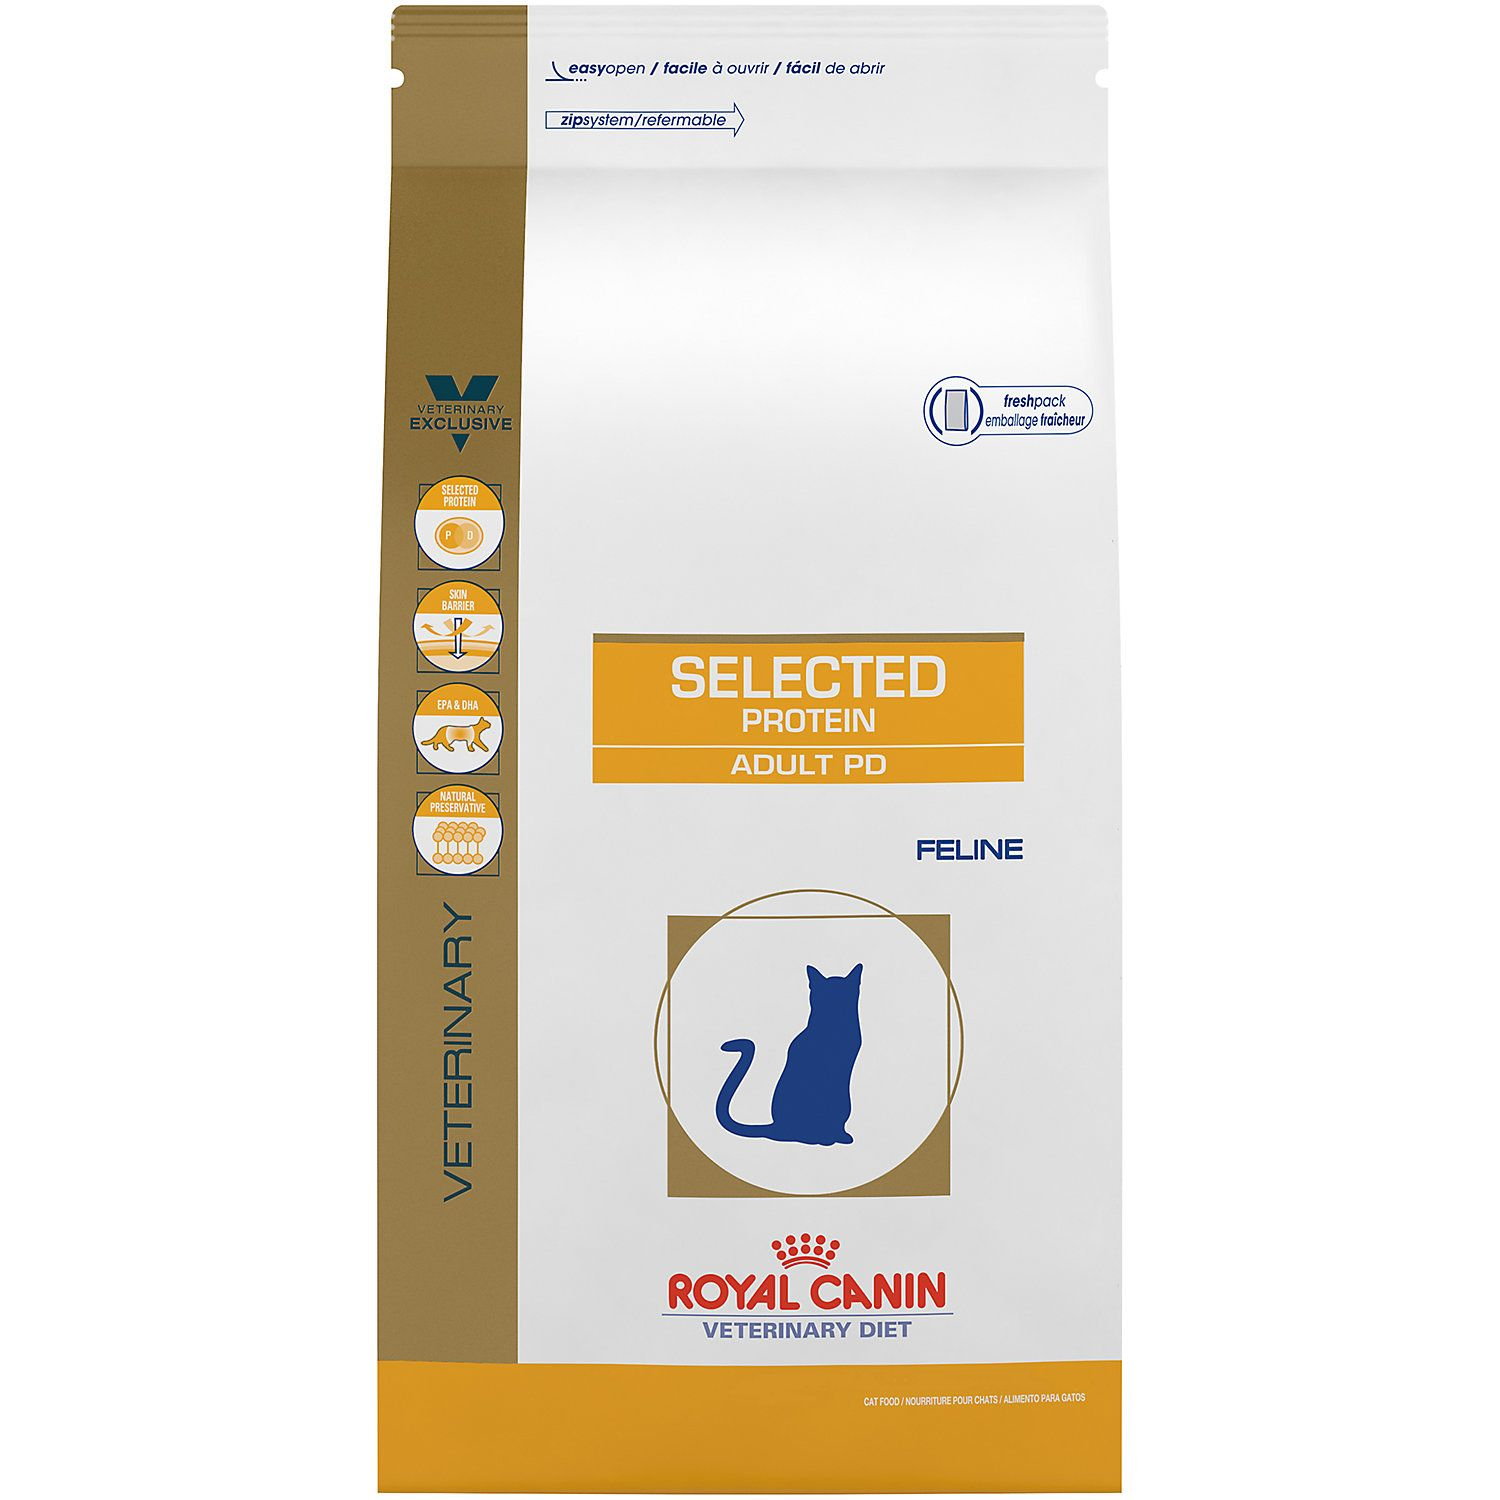 Royal Canin Veterinary Diet Feline Selected Protein Adult